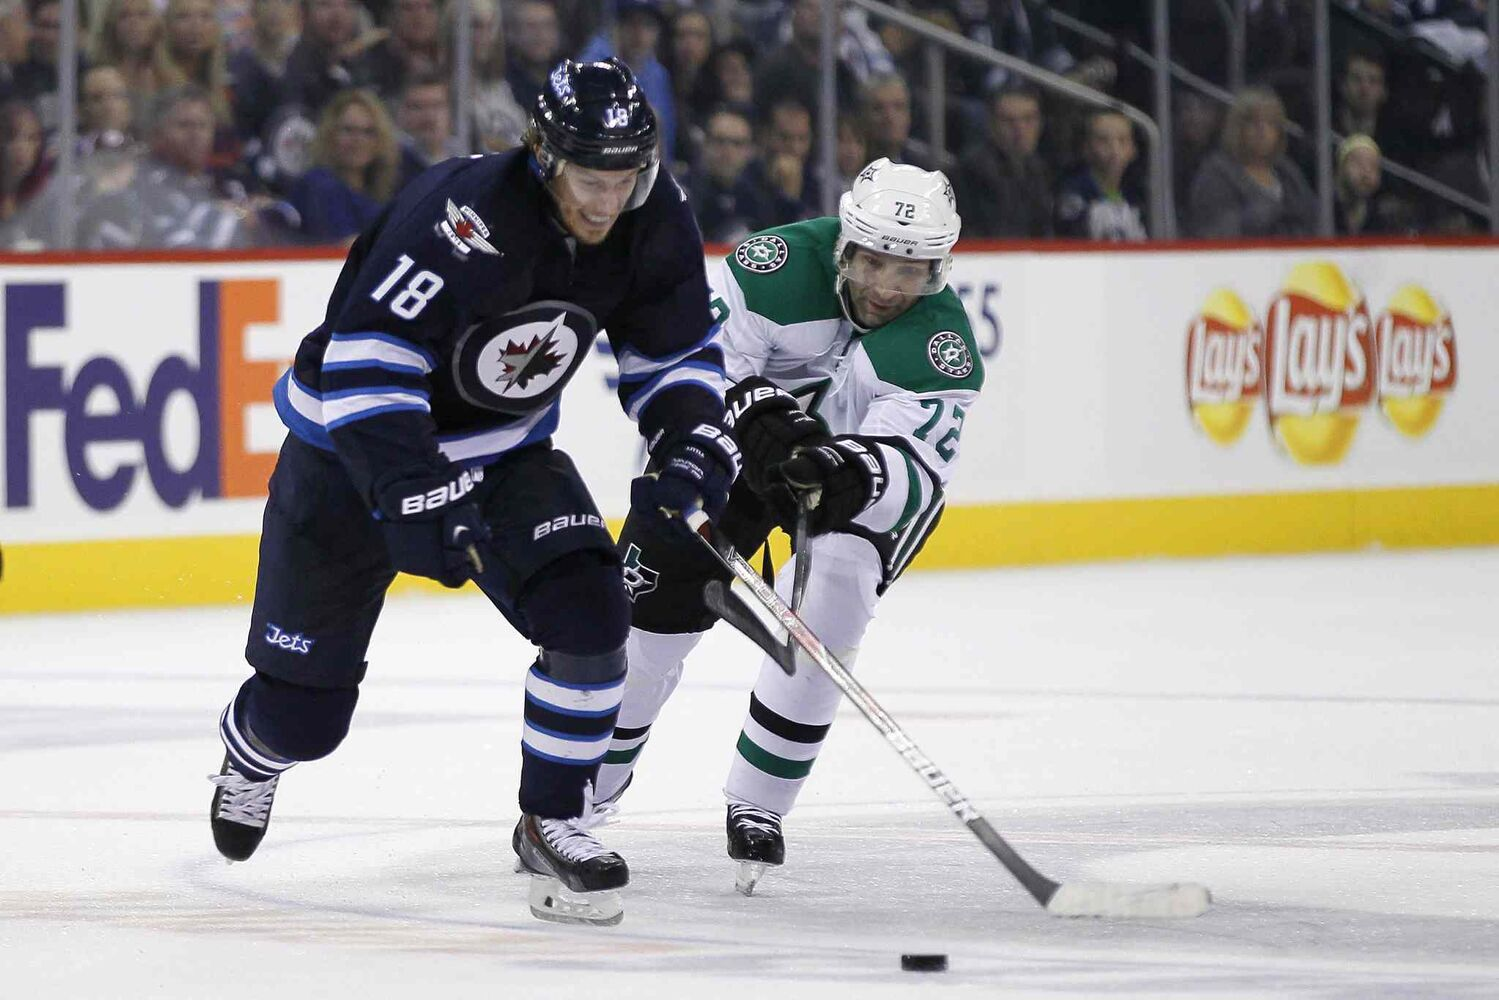 Bryan Little and Dallas Stars forward Erik Cole (72) race for the puck during the second period. (JOHN WOODS / THE CANADIAN PRESS)